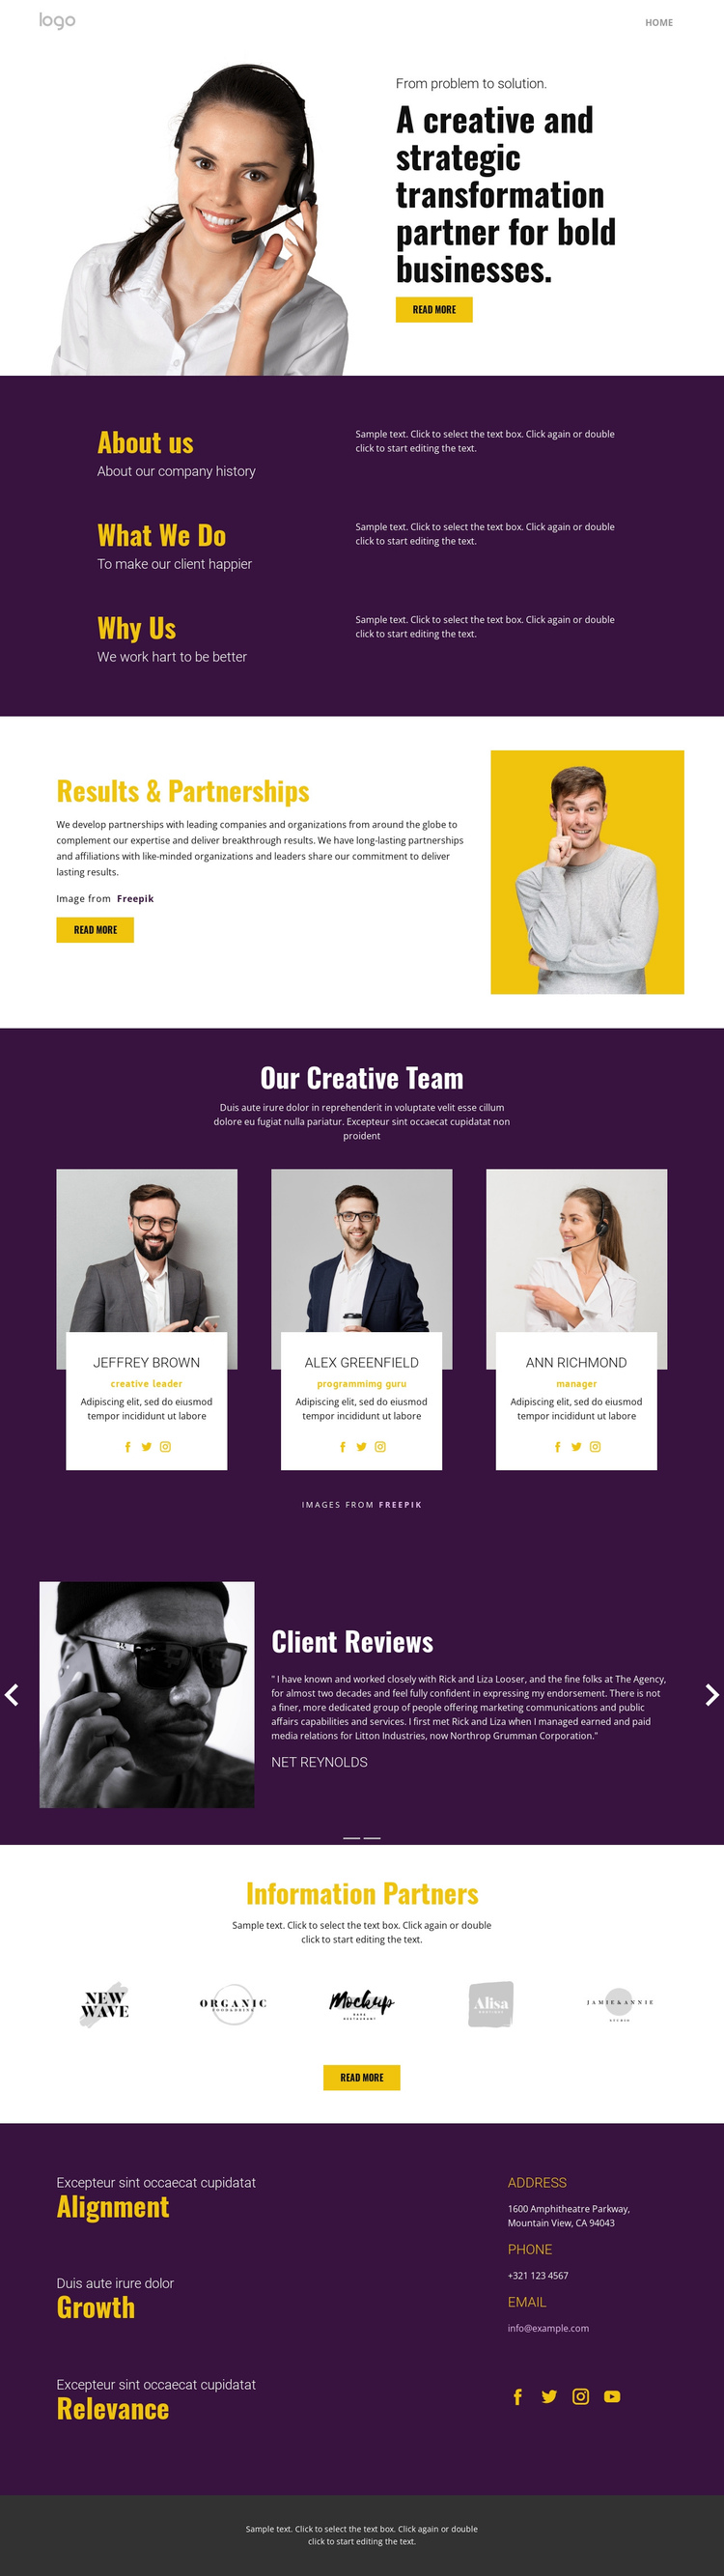 Creative strategy in business Website Builder Software